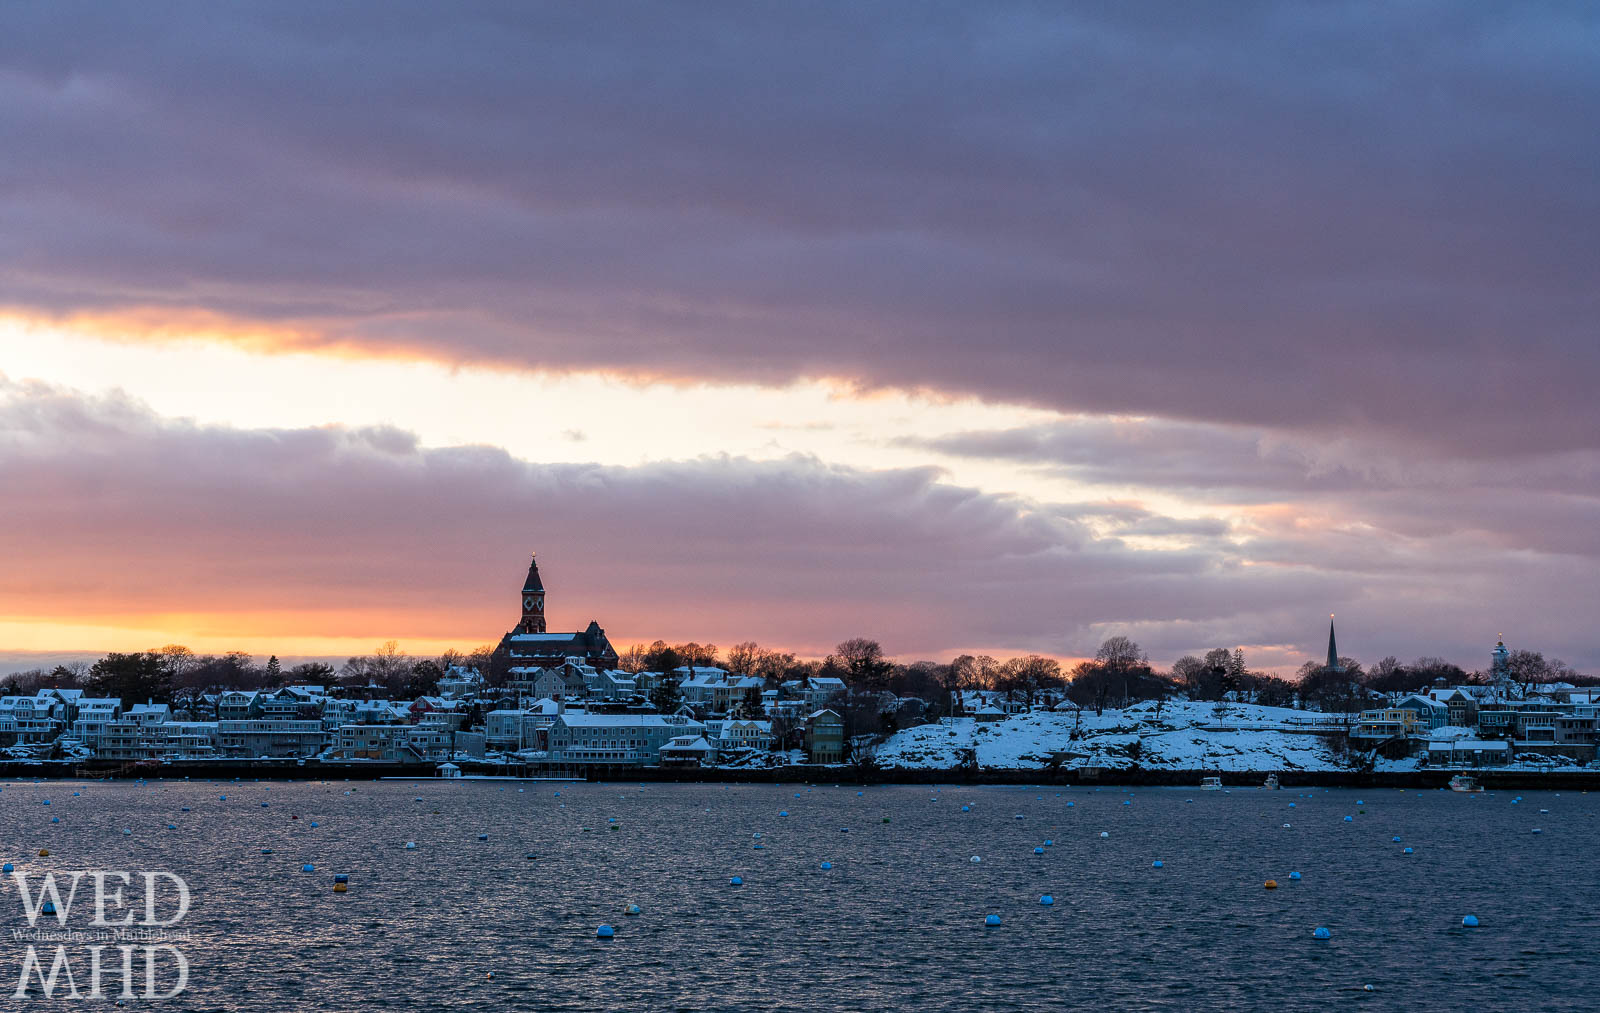 A beautiful sunset forms after a March storm dropped seven inches of snow on the town of Marblehead